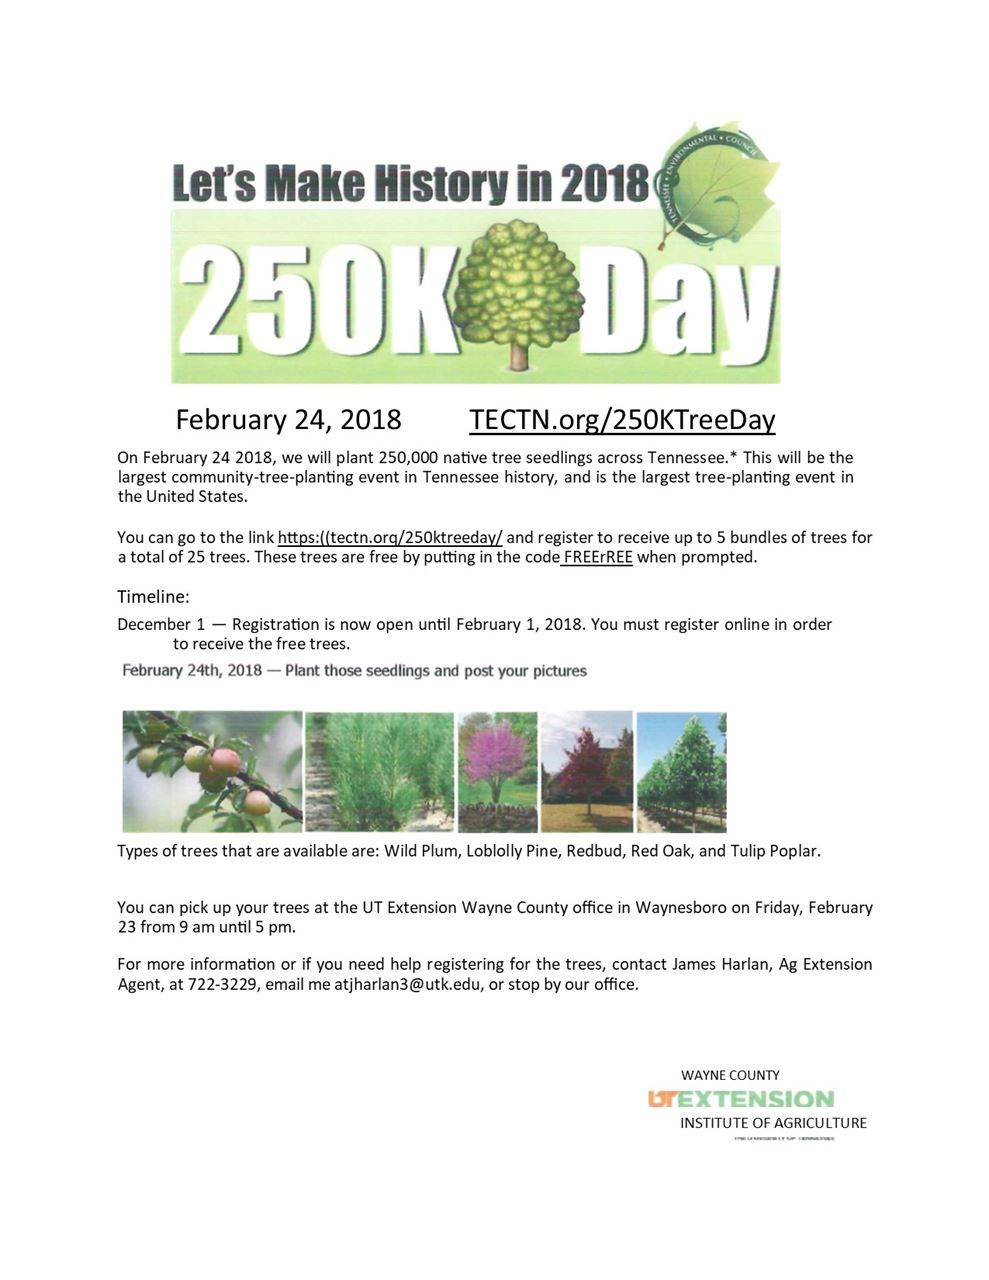 Wayne County Chamber of Commerce - 250 K Tree Day